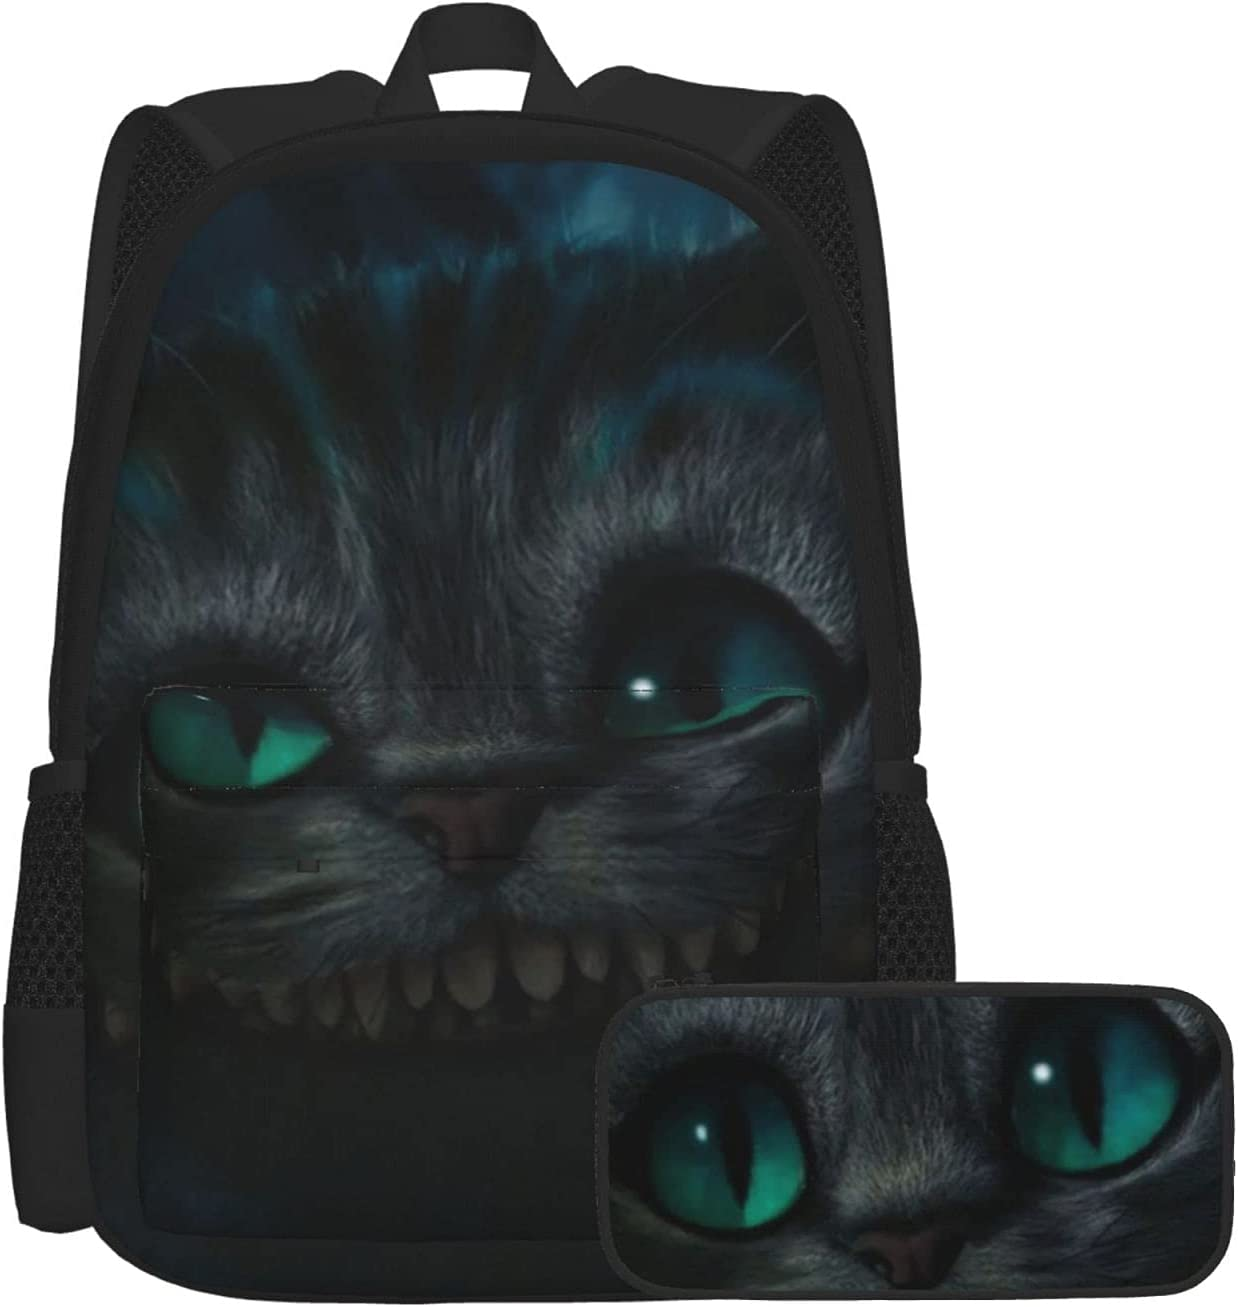 Big Face Cheshire Cat Two-Piece Set School 5% OFF With Casual P Bookbag Max 70% OFF